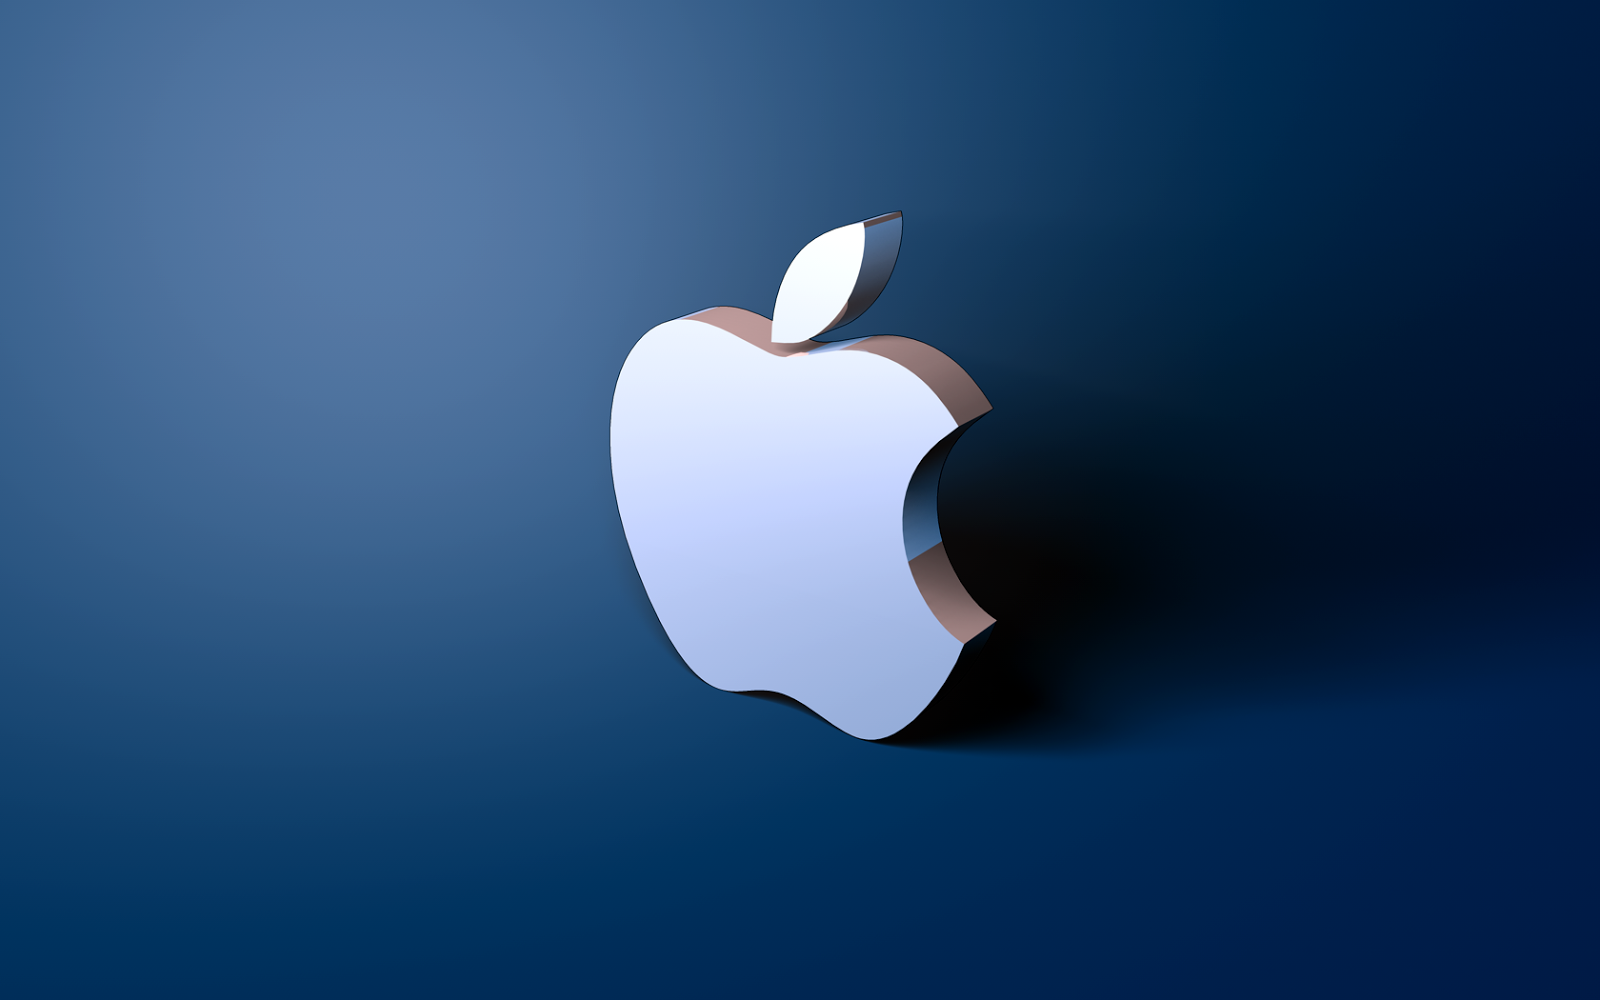 hd apple wallpaper hd wallpapers 1080p apple